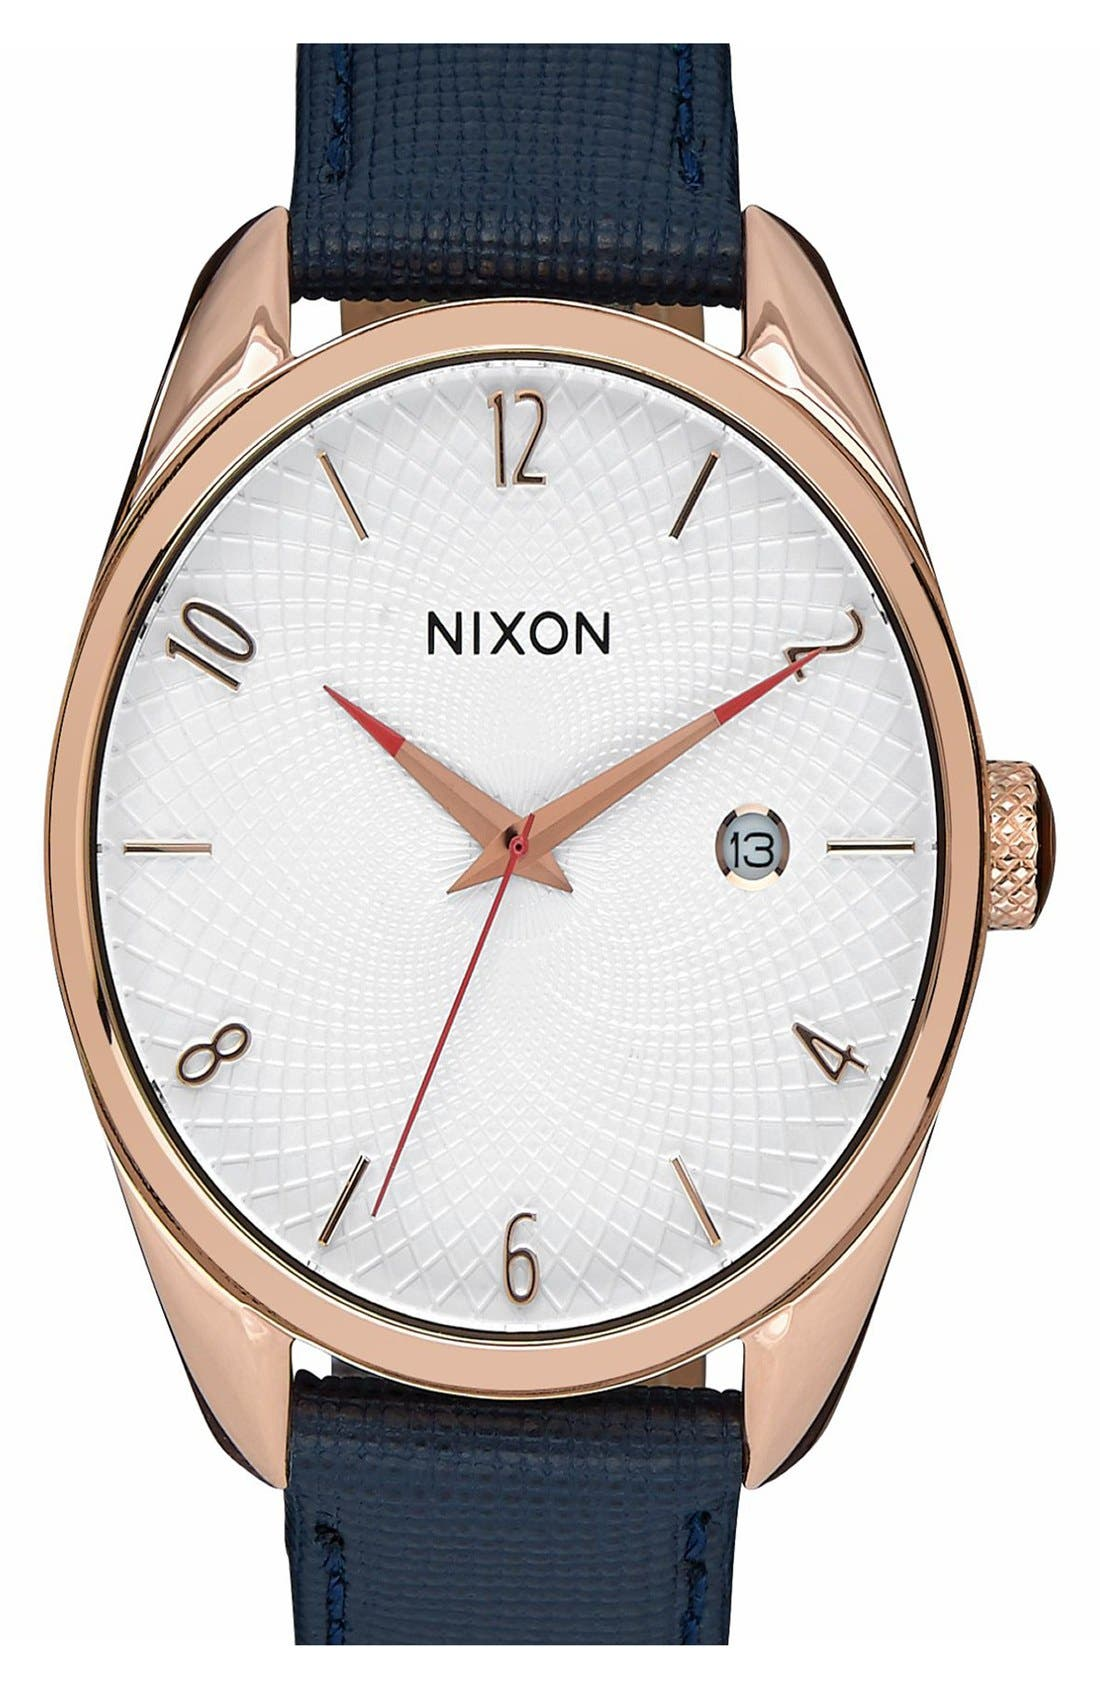 NIXON Bullet Guilloche Dial Oval Leather Strap Watch, 38mm